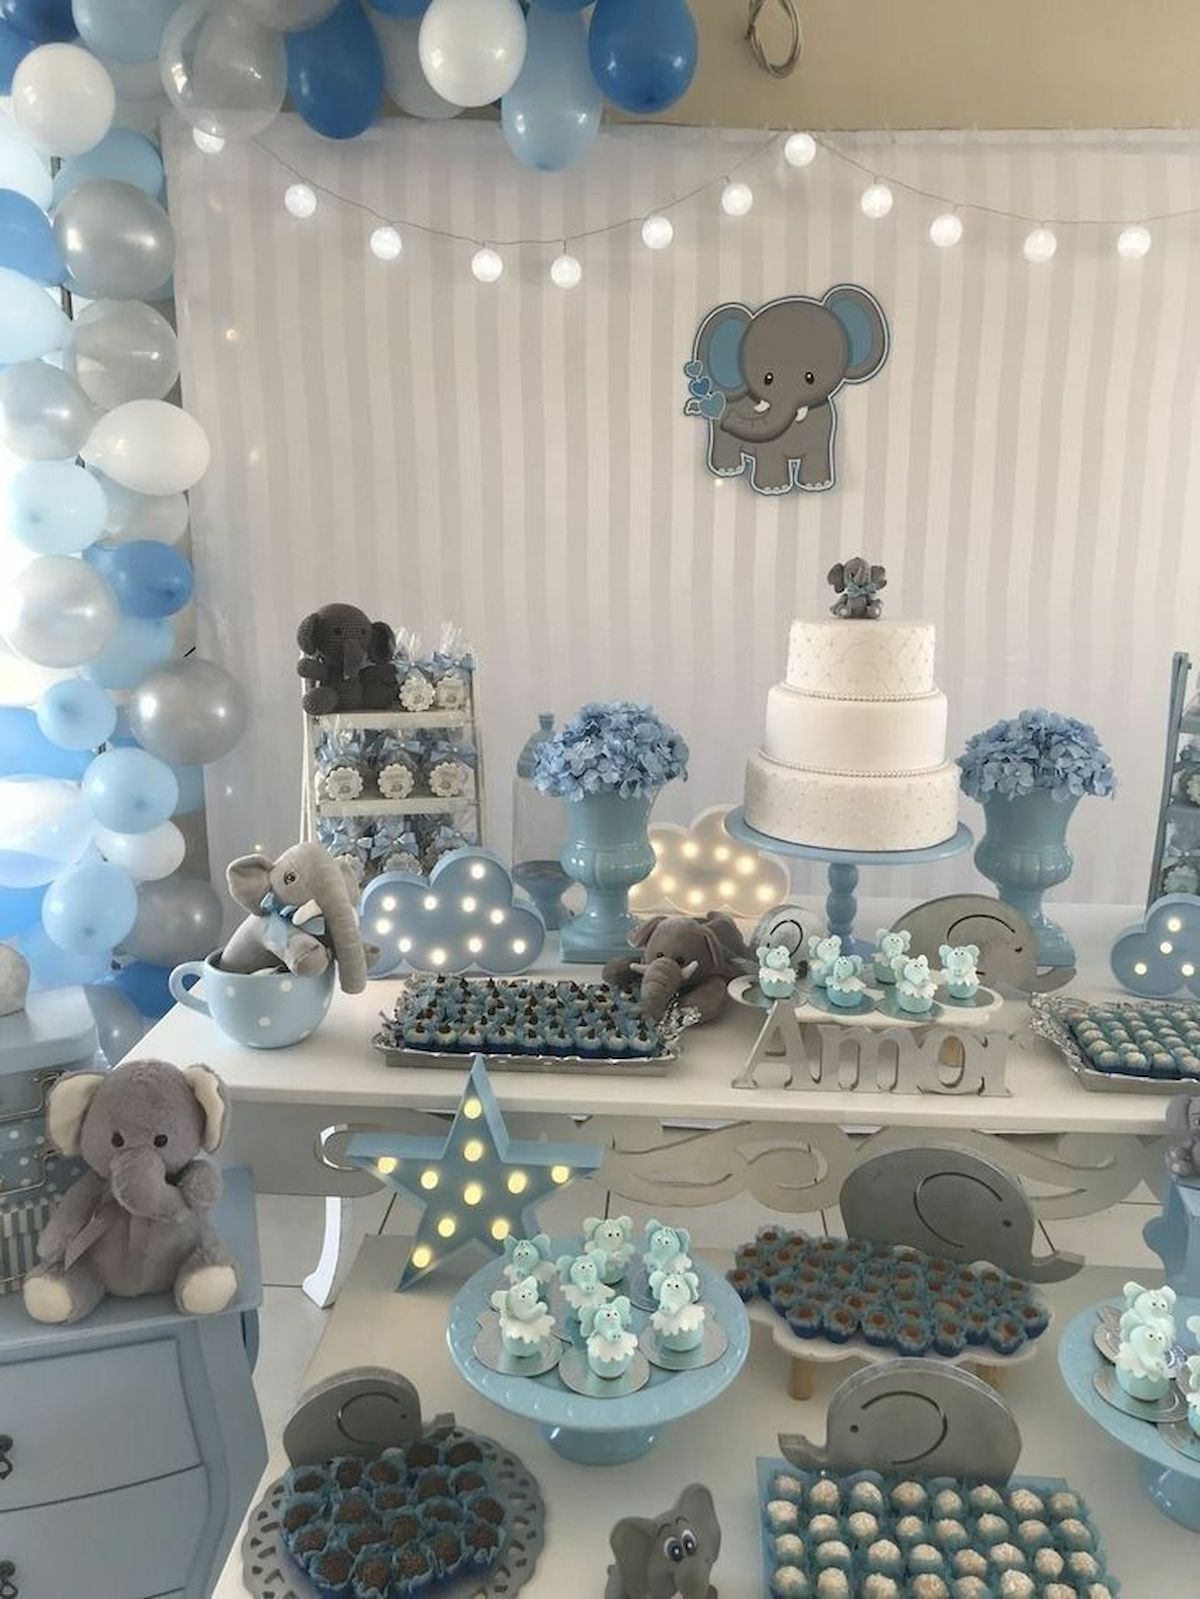 Awesome 50 Awesome Baby Shower Themes and Decorating Ideas